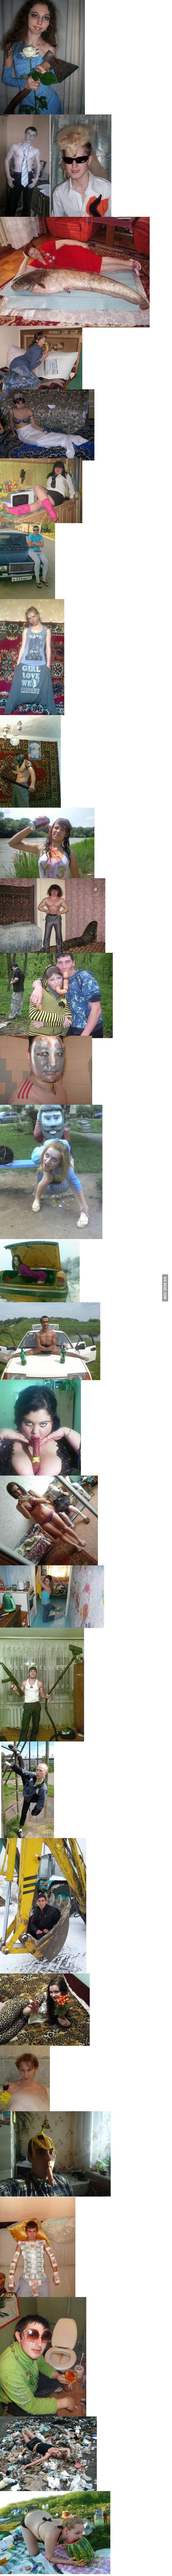 russian dating pictures 9gag